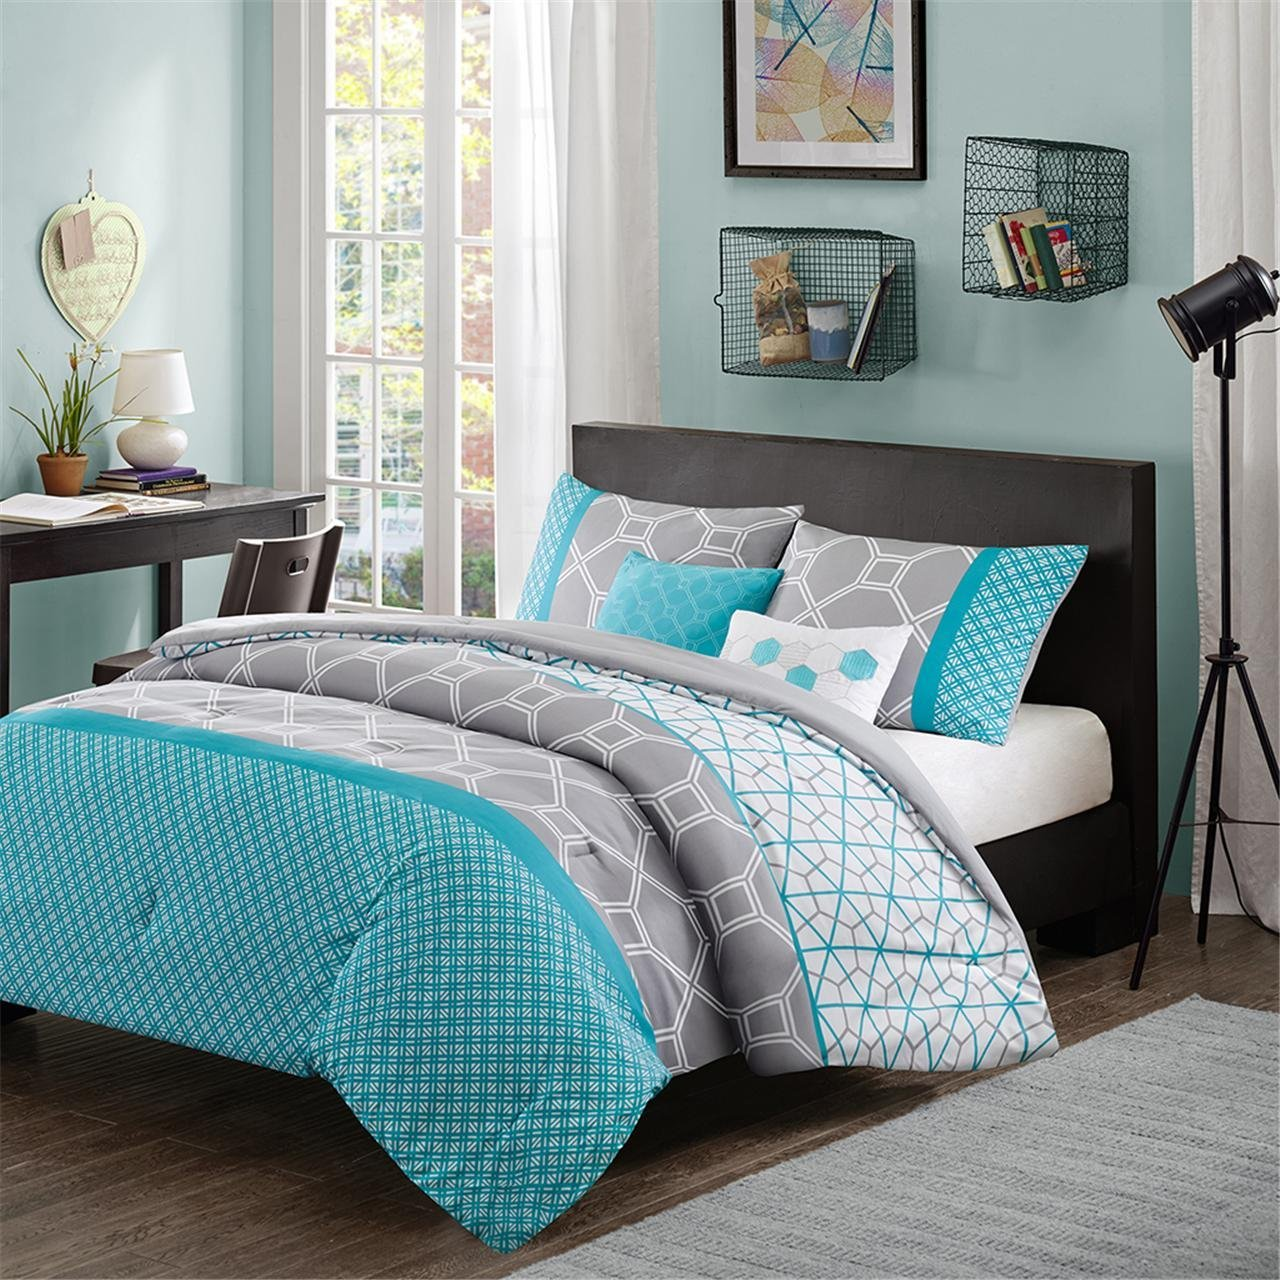 Image of: Blue and Grey Bedding